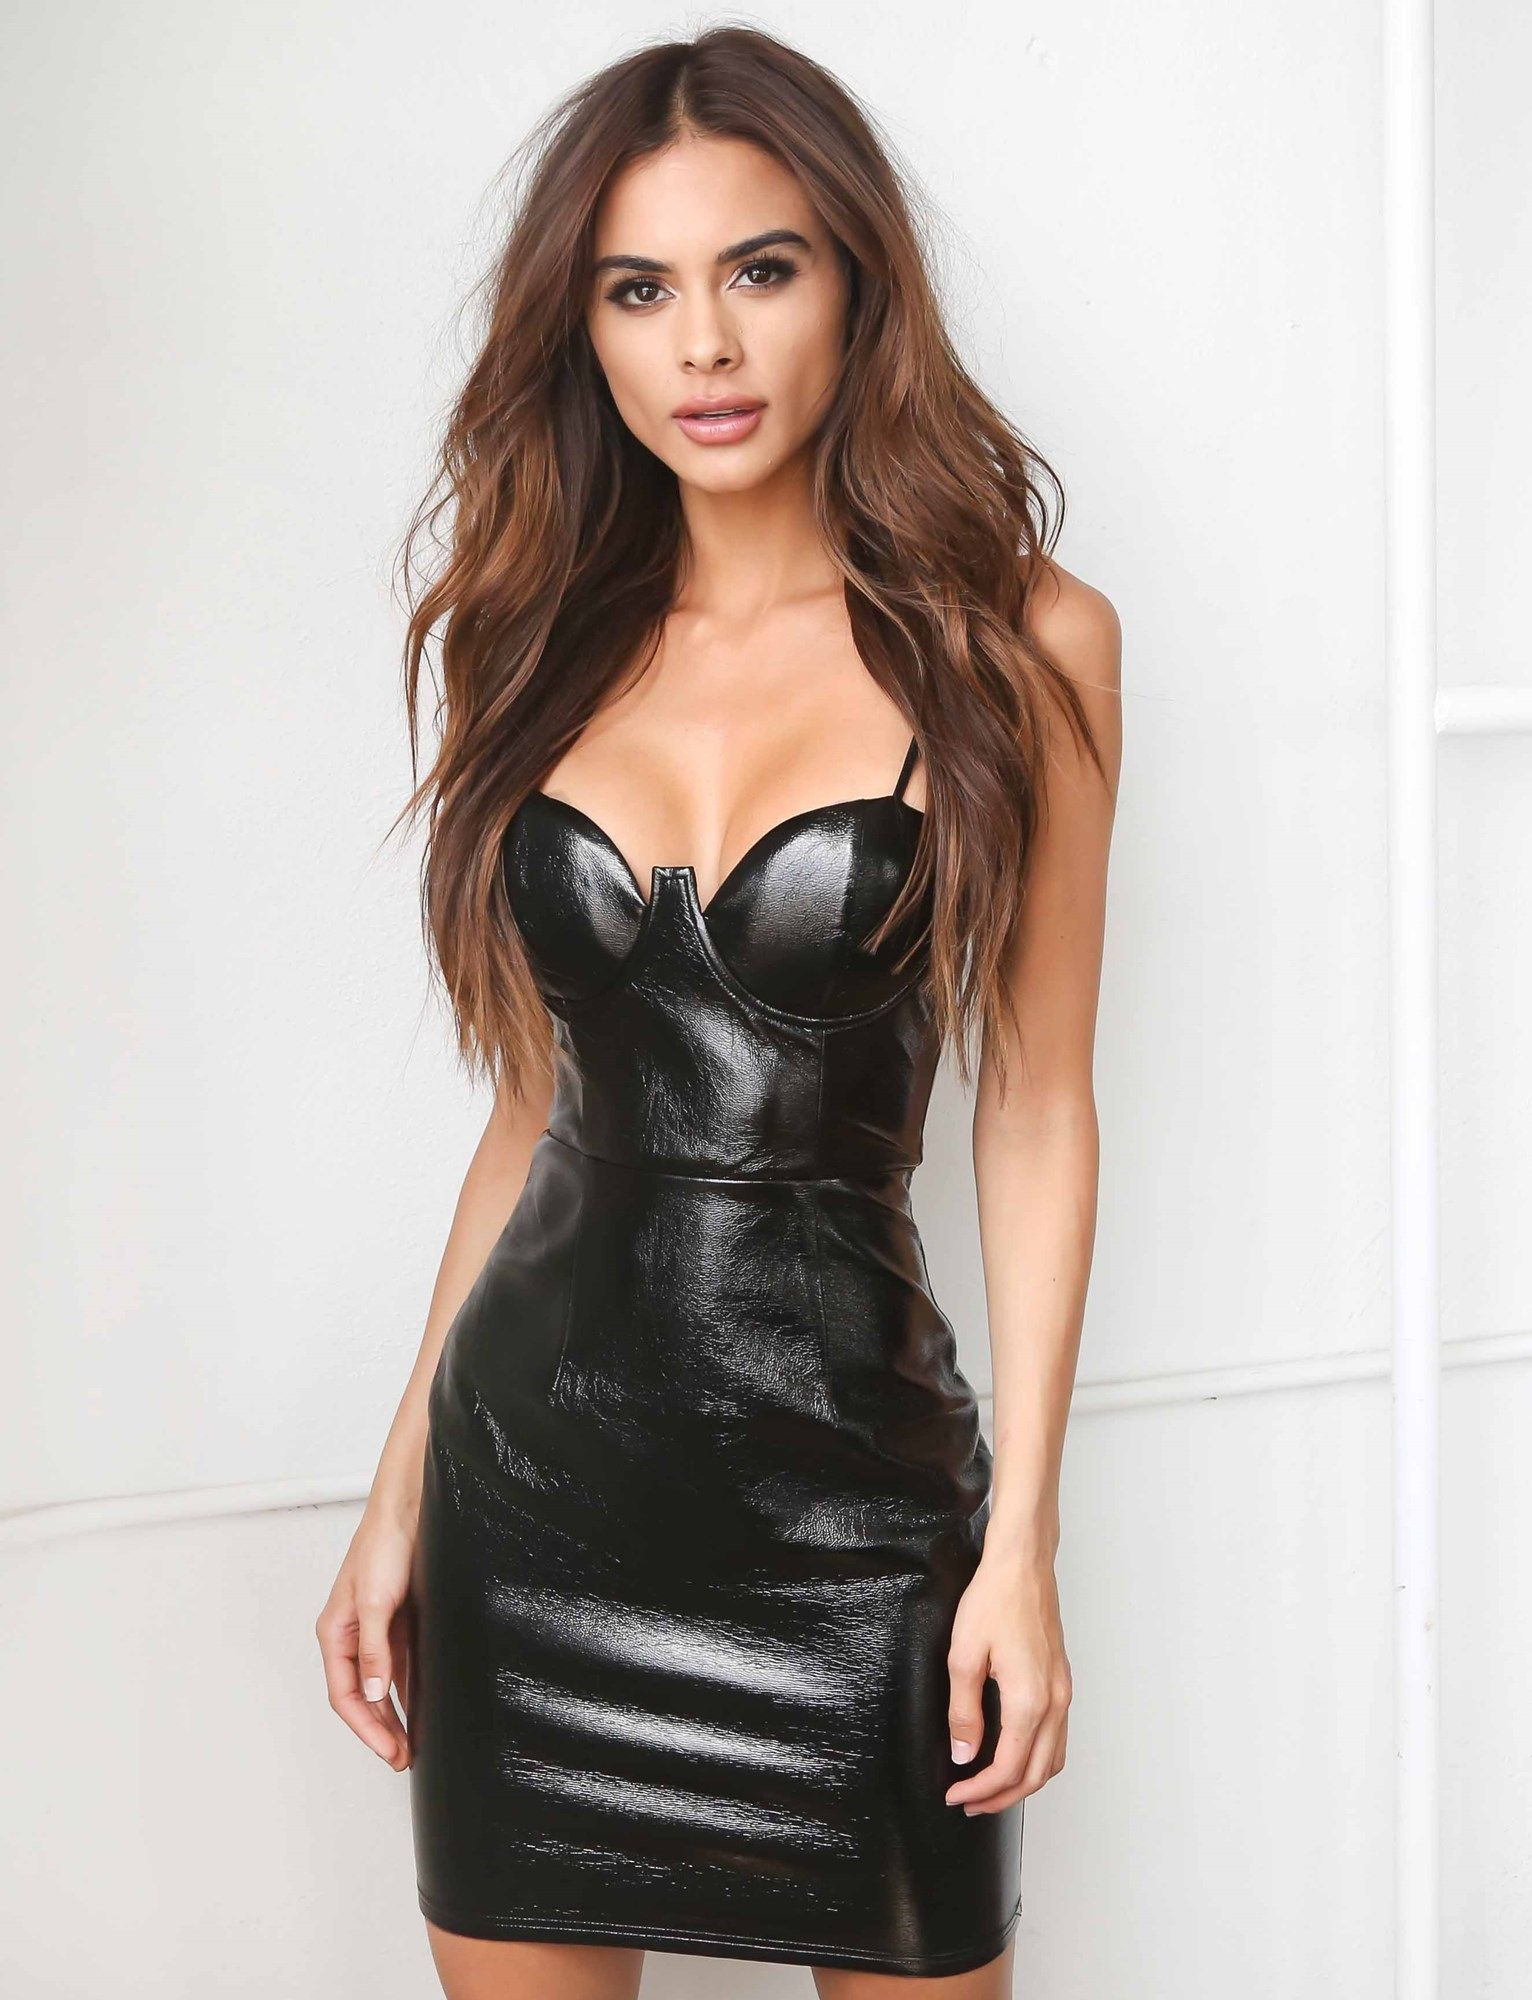 88d90980 Tiger Mist Mina Dress. Super sexy and great for a night out at the club!  #bodycon #dress #black #leather